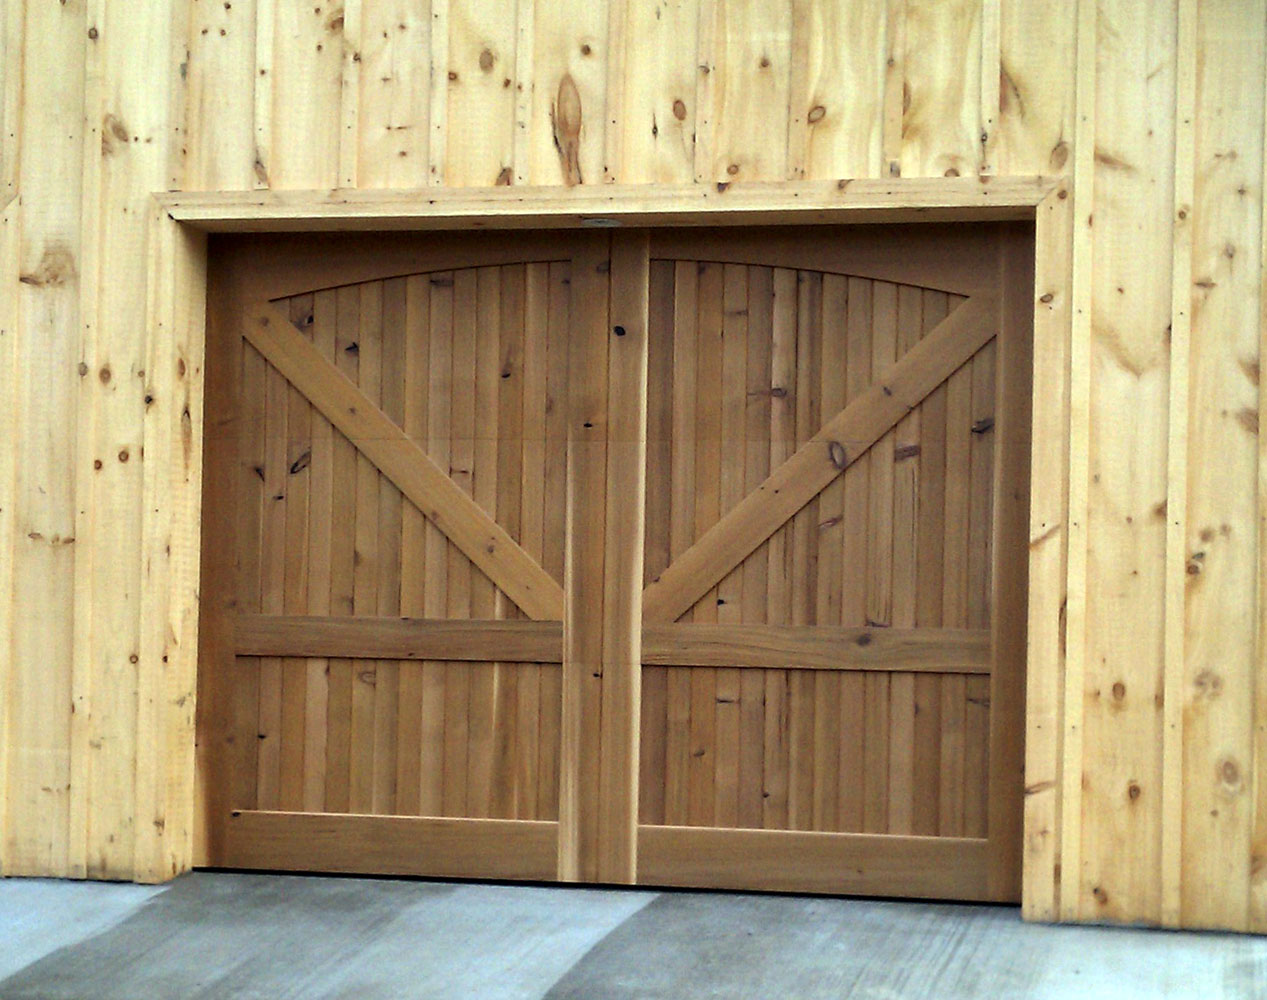 Wood overhead garage doors for sale in pennsylvania for Wood looking garage doors